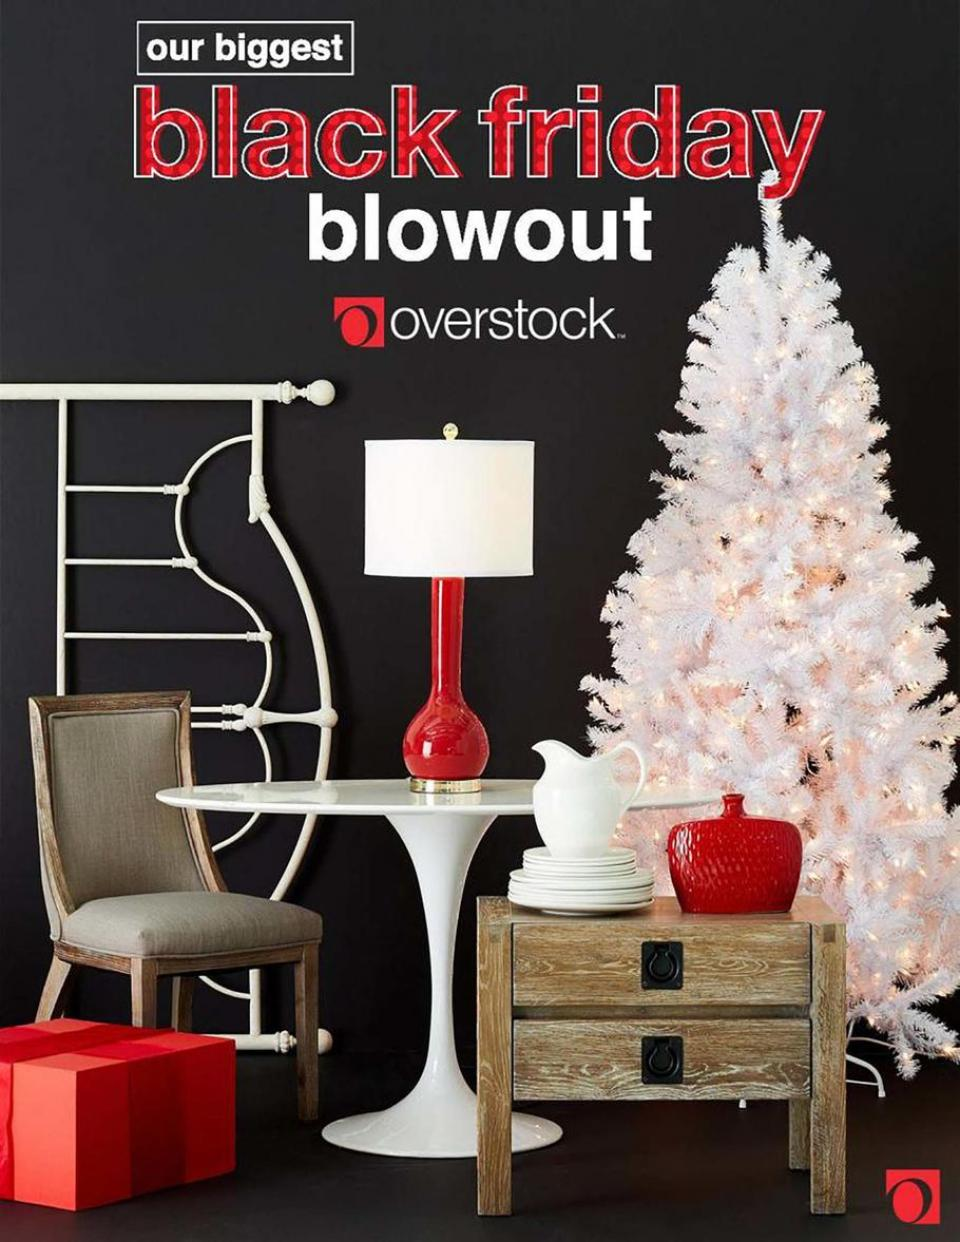 Overstock black friday ad